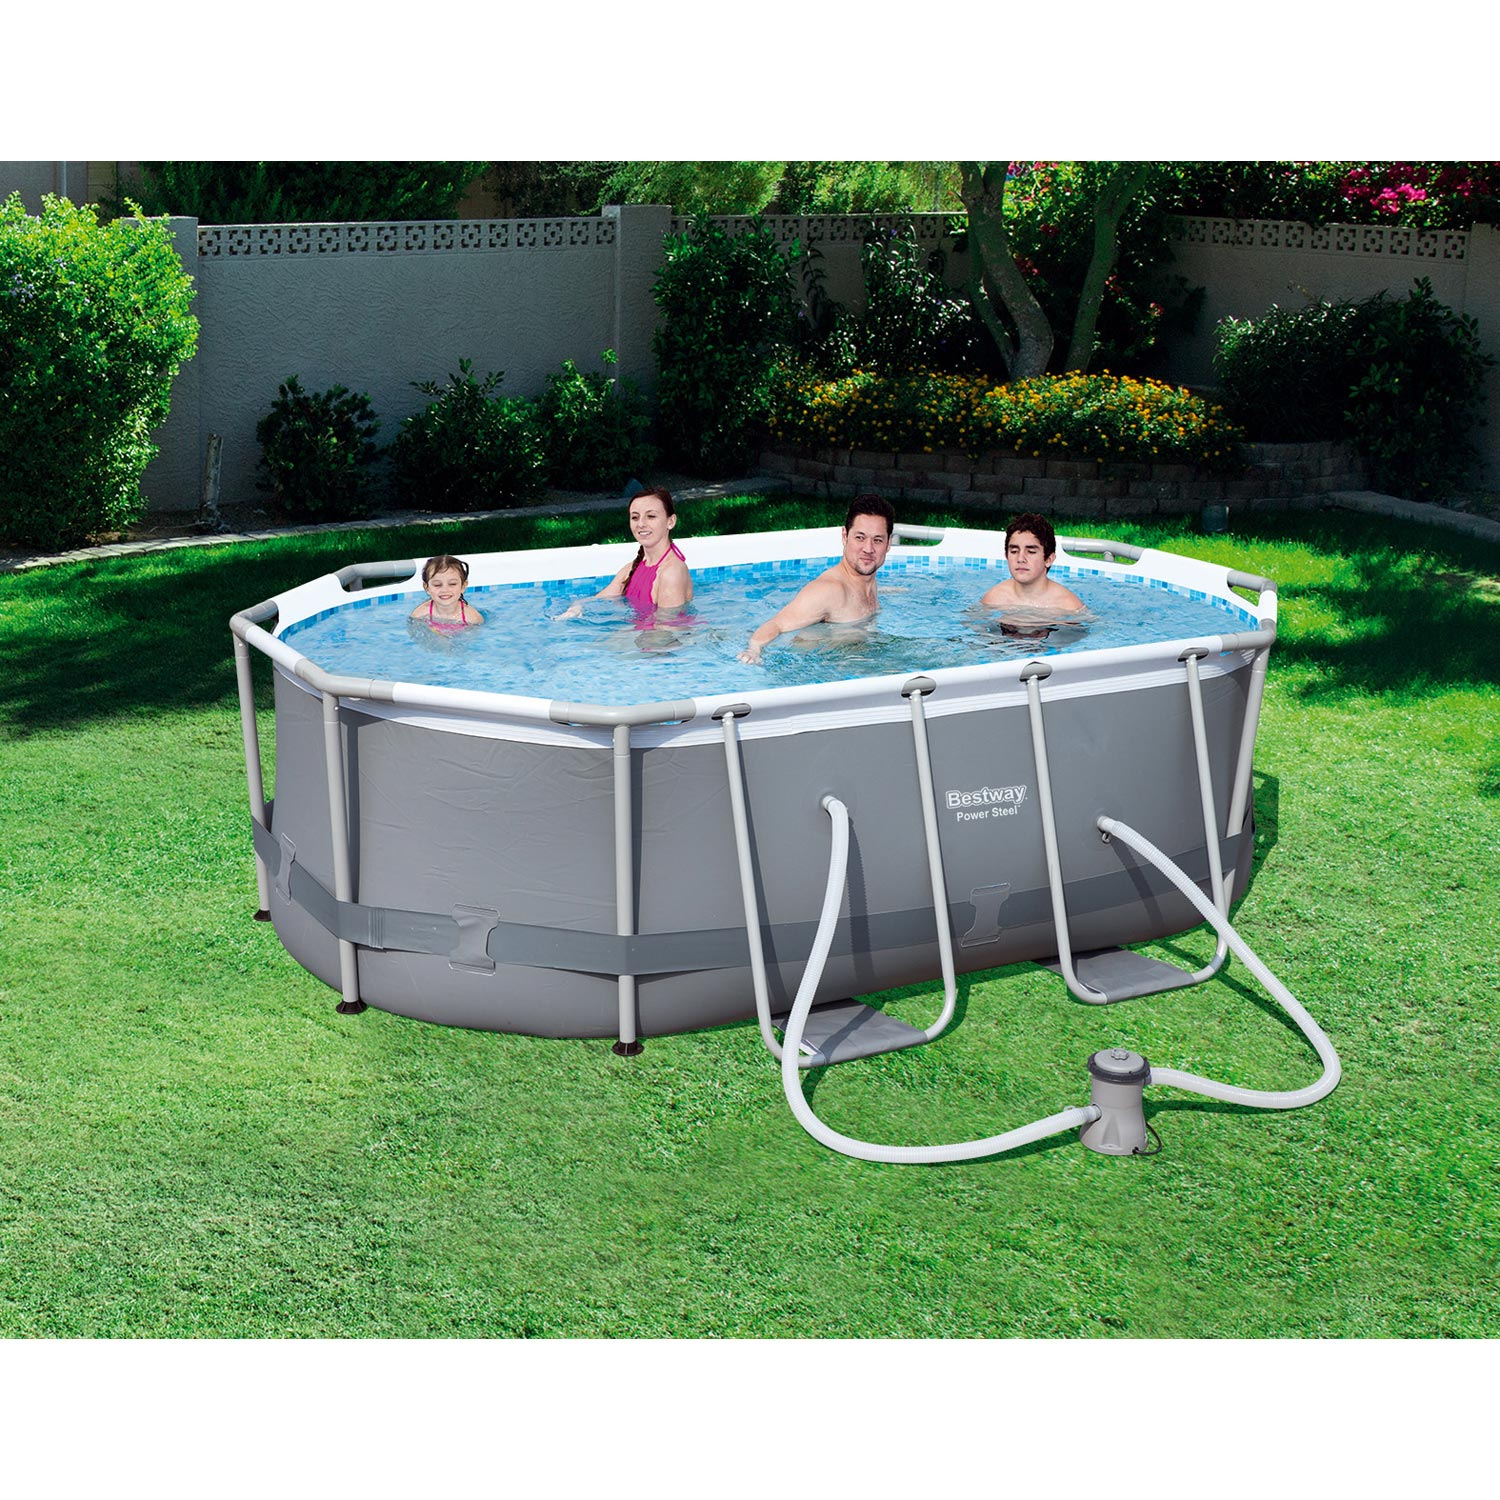 Piscine hors sol autoportante tubulaire bestway l 3 x l 2 for Prix piscine 9x5